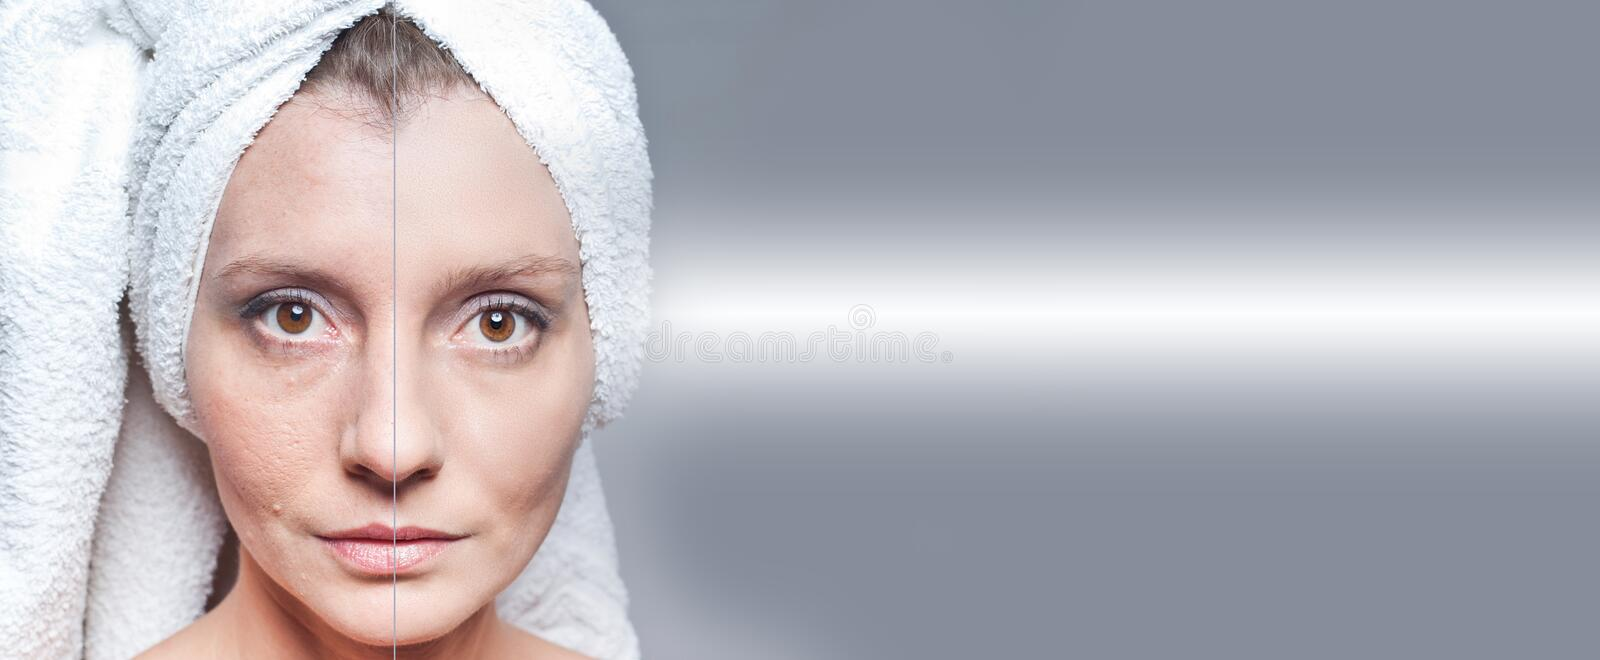 Happy woman after beauty treatment - before/after shots - skin care, anti-aging procedures, rejuvenation, lifting, tightening of. Facial skin royalty free stock images